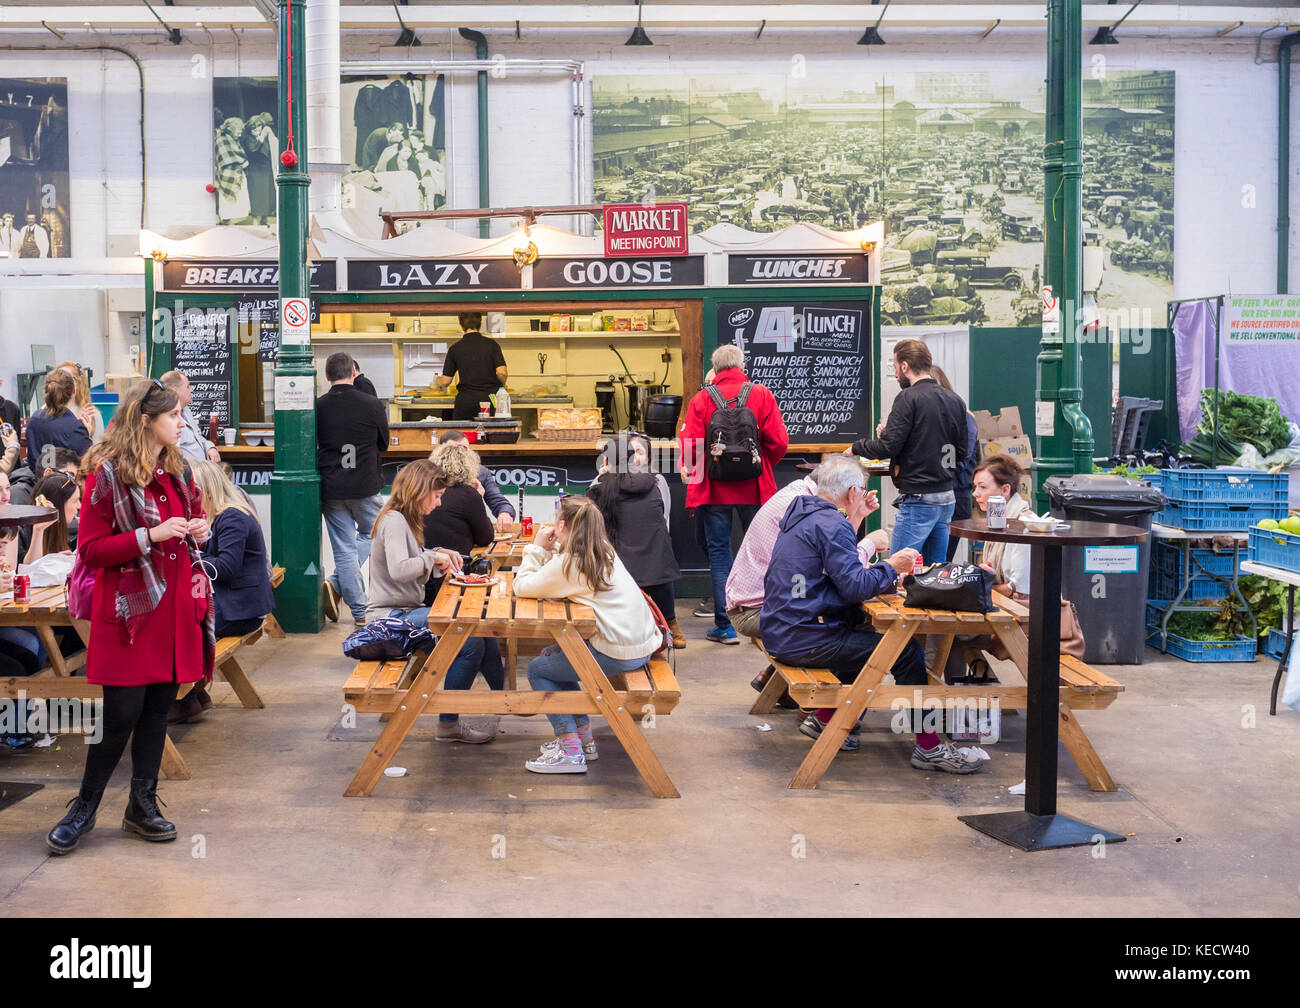 Eating area at food stall, St. Georges Market, Belfast - Stock Image